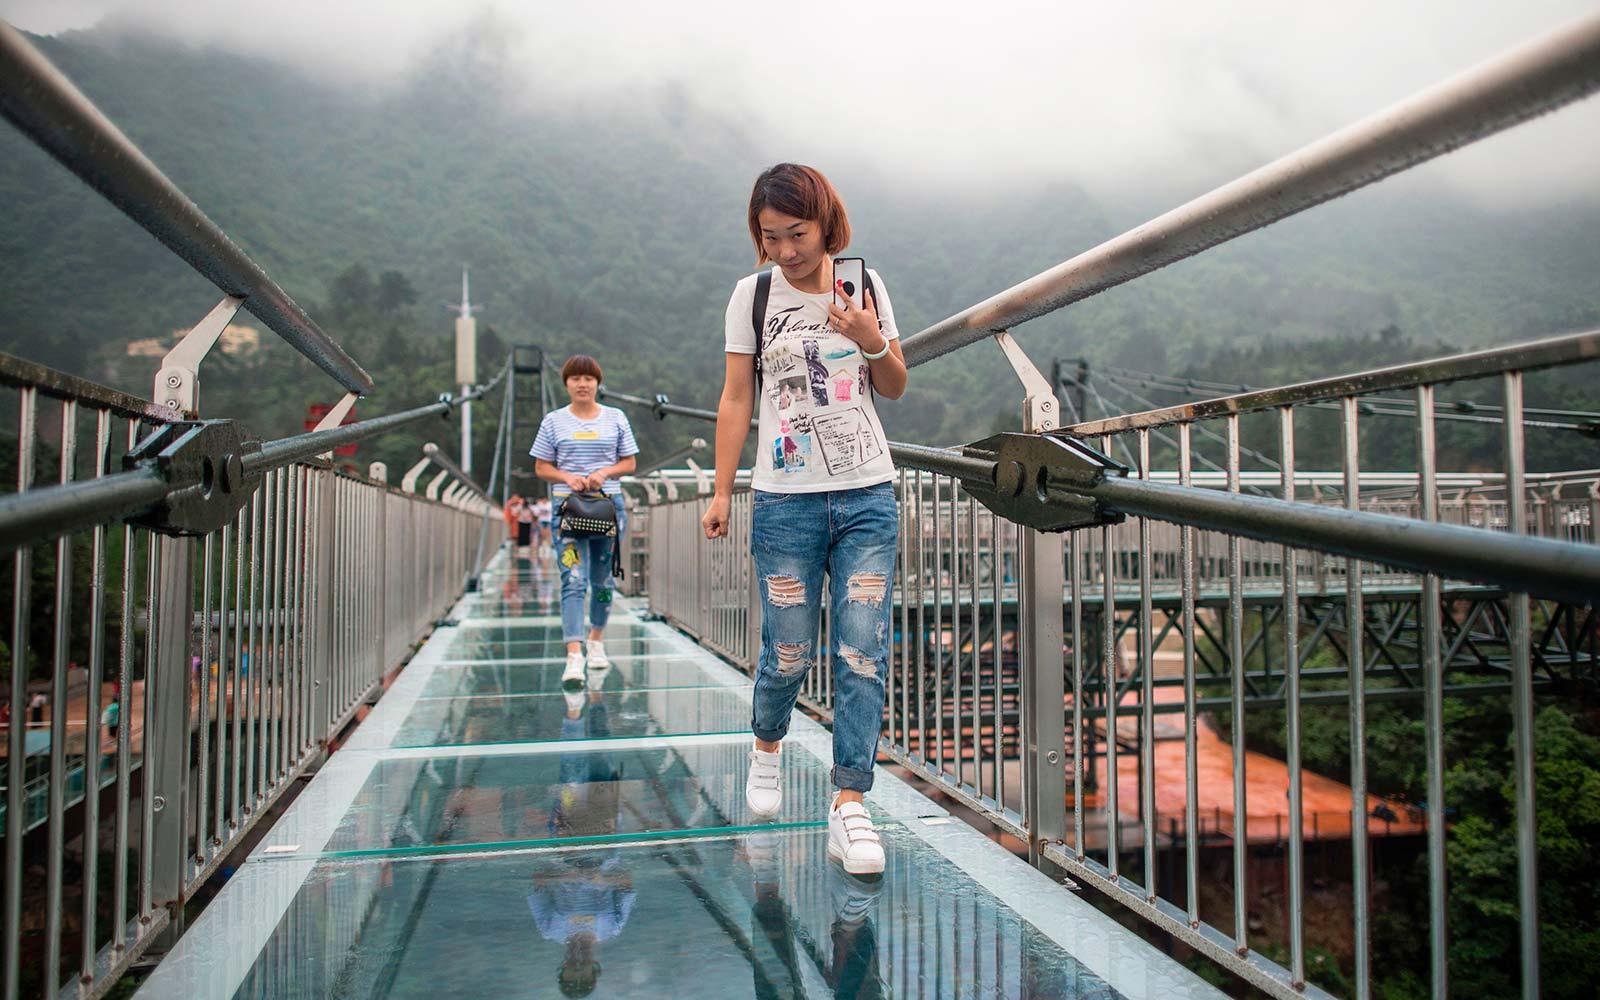 Tourists look on from a glass-bottomed skywalk.